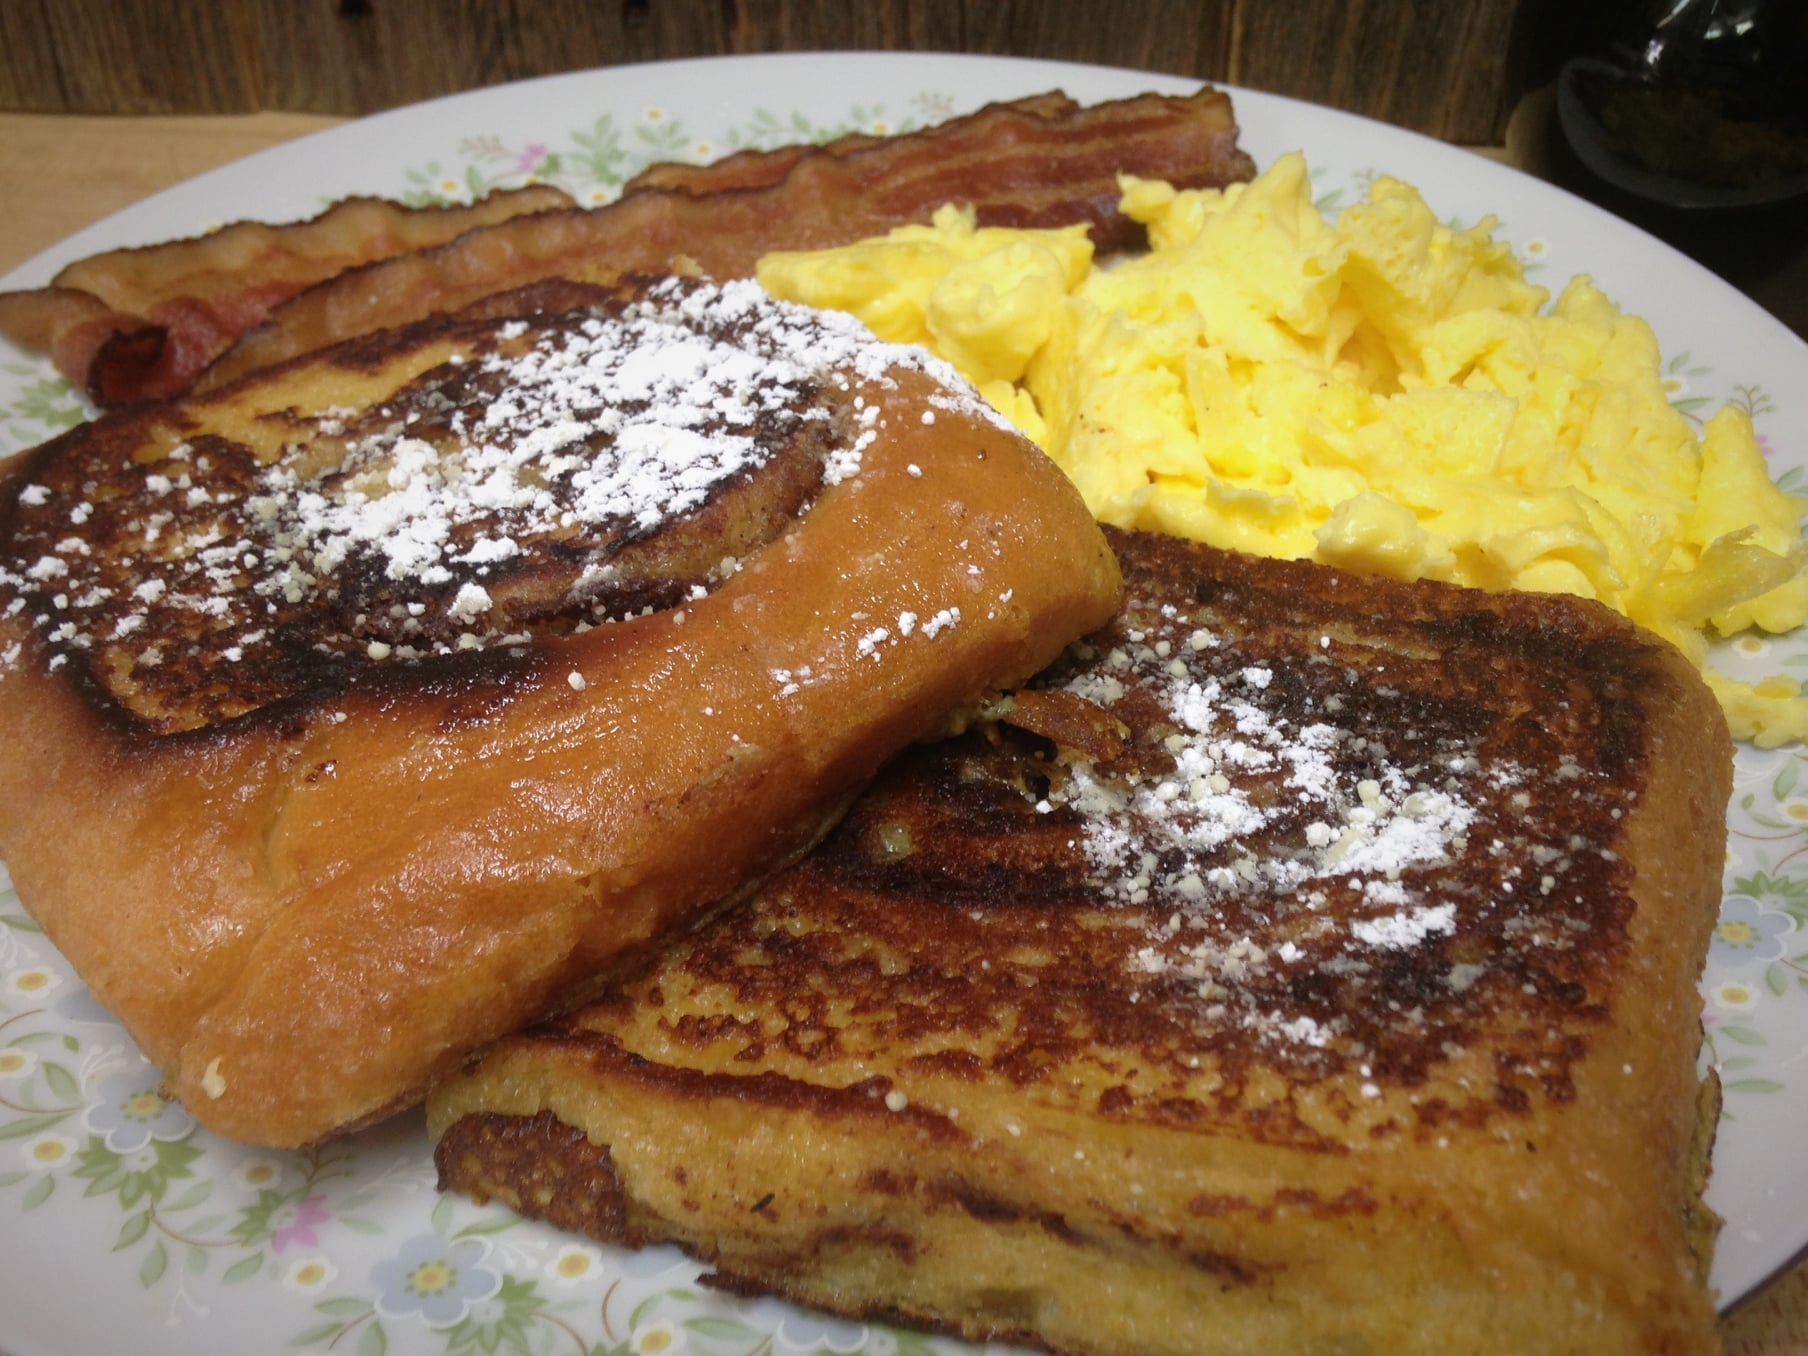 French toast, bacon and scramble eggs on a plate